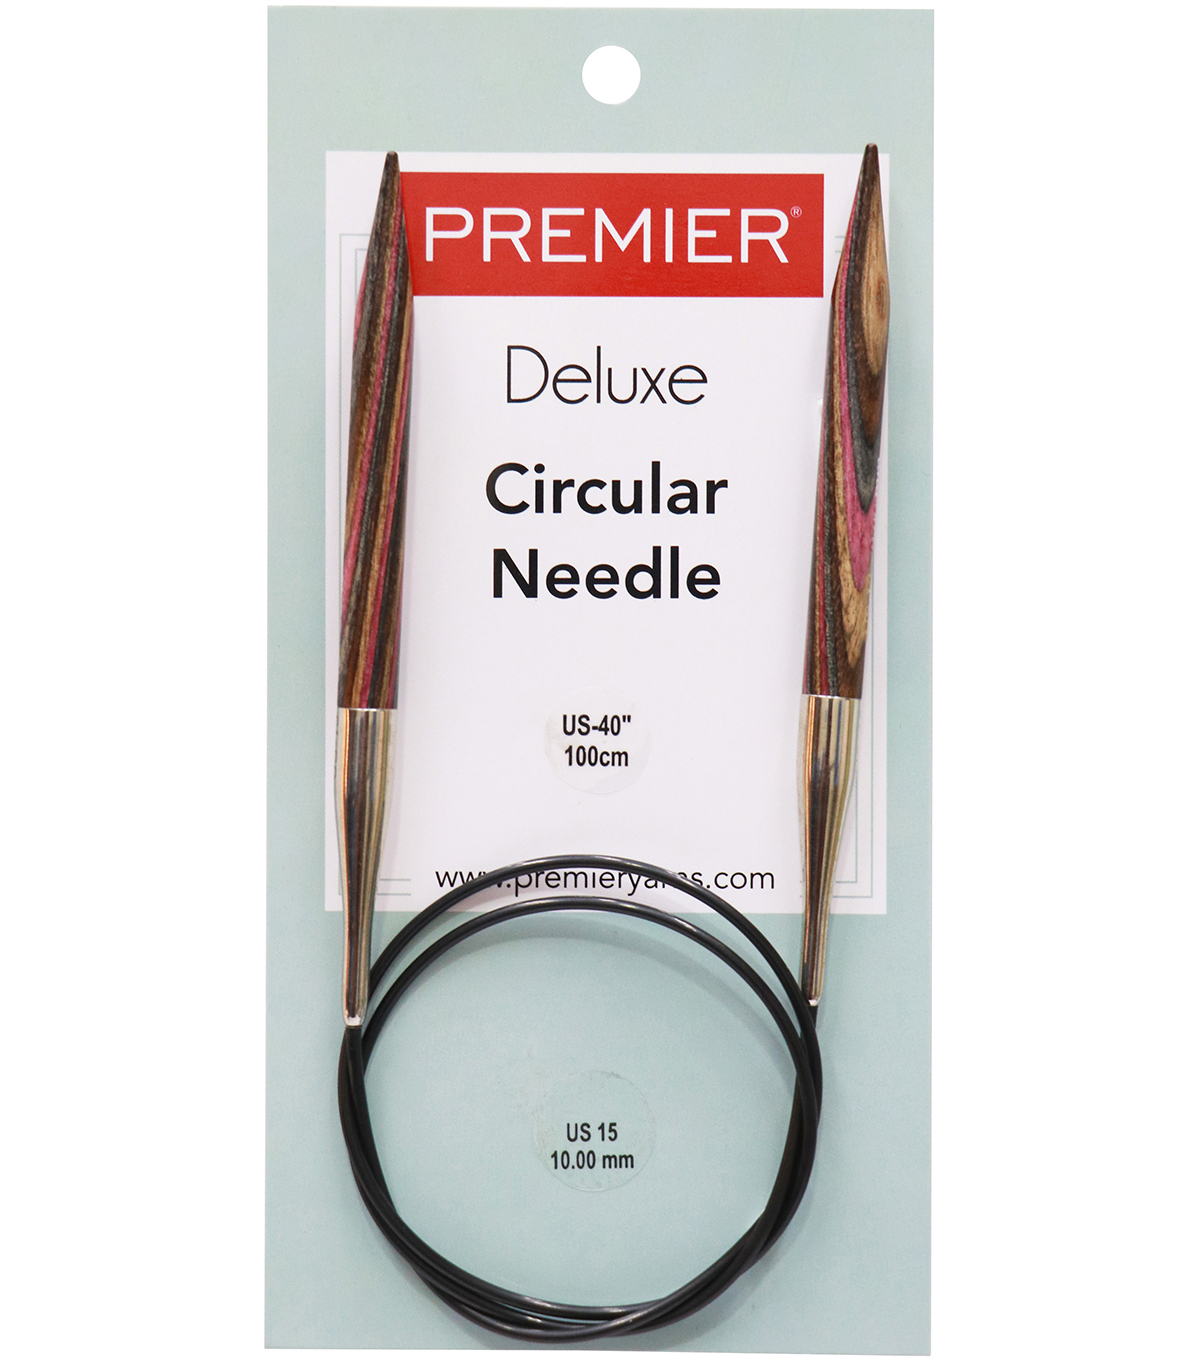 Deborah Norville Fixed Circular Needles 40\u0022 Size 15/10.0mm